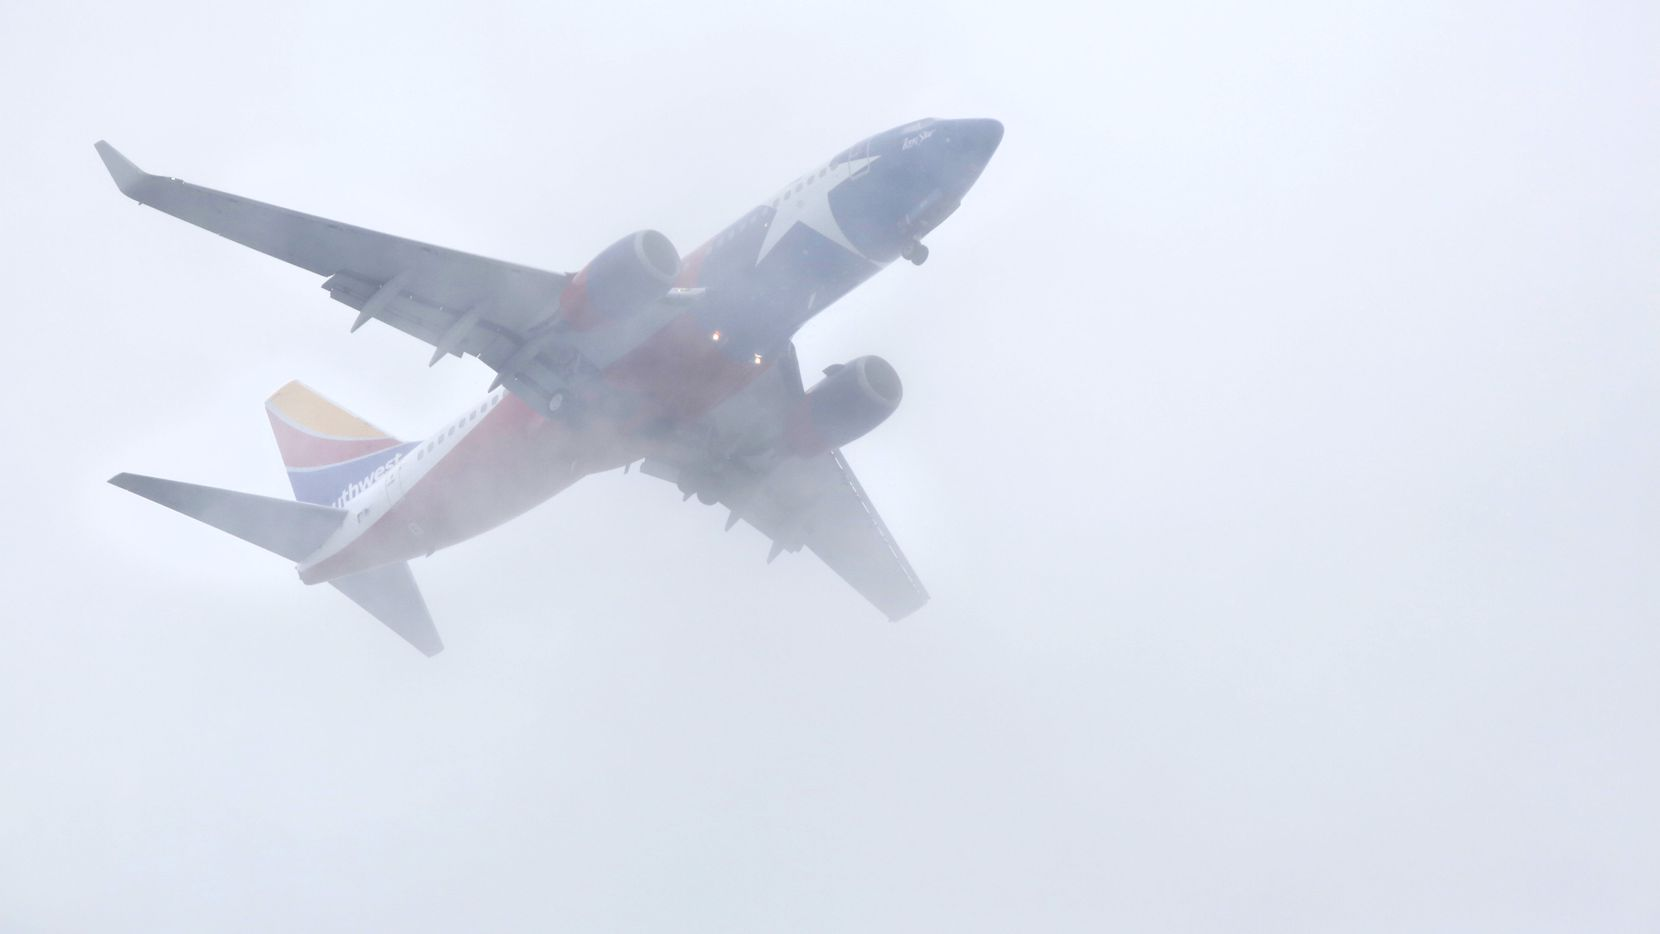 A Southwest Airlines jet cut through a low cloud bank over downtown as it made its approach to Dallas Love Field in October 2018.